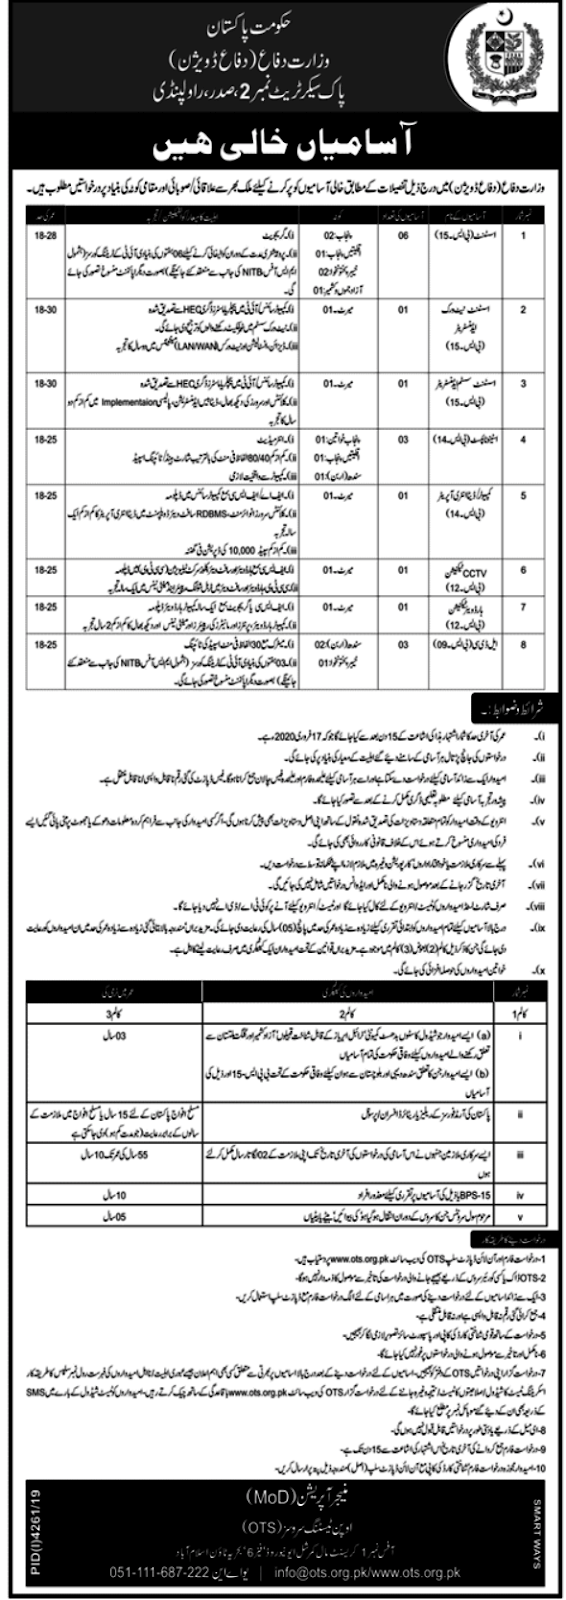 ministry of defence ots jobs 2020